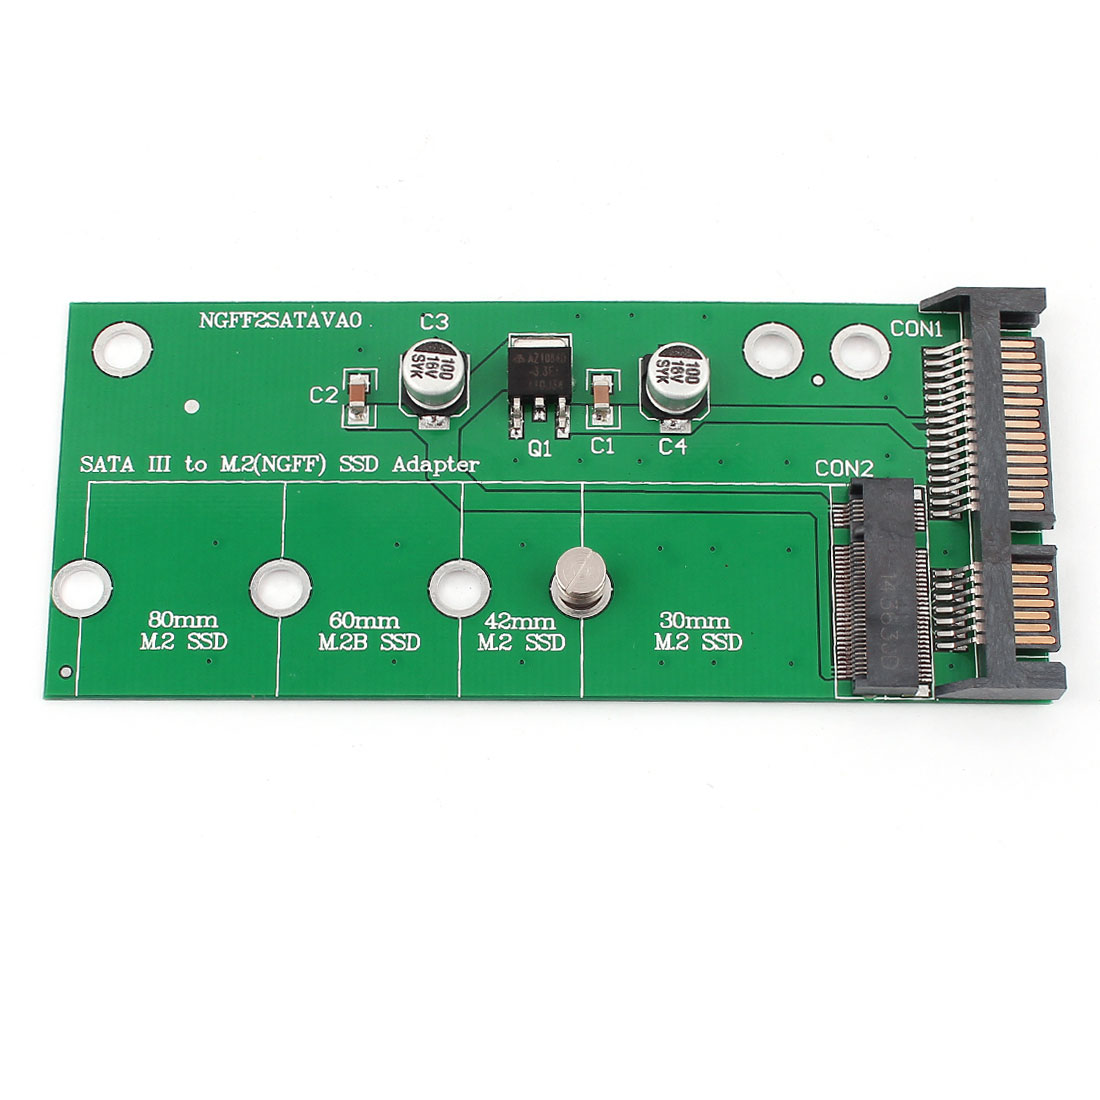 SATA III to 67pin B key M.2 NGFF SSD Converter Adapter Card for DOS/Win7/Linux